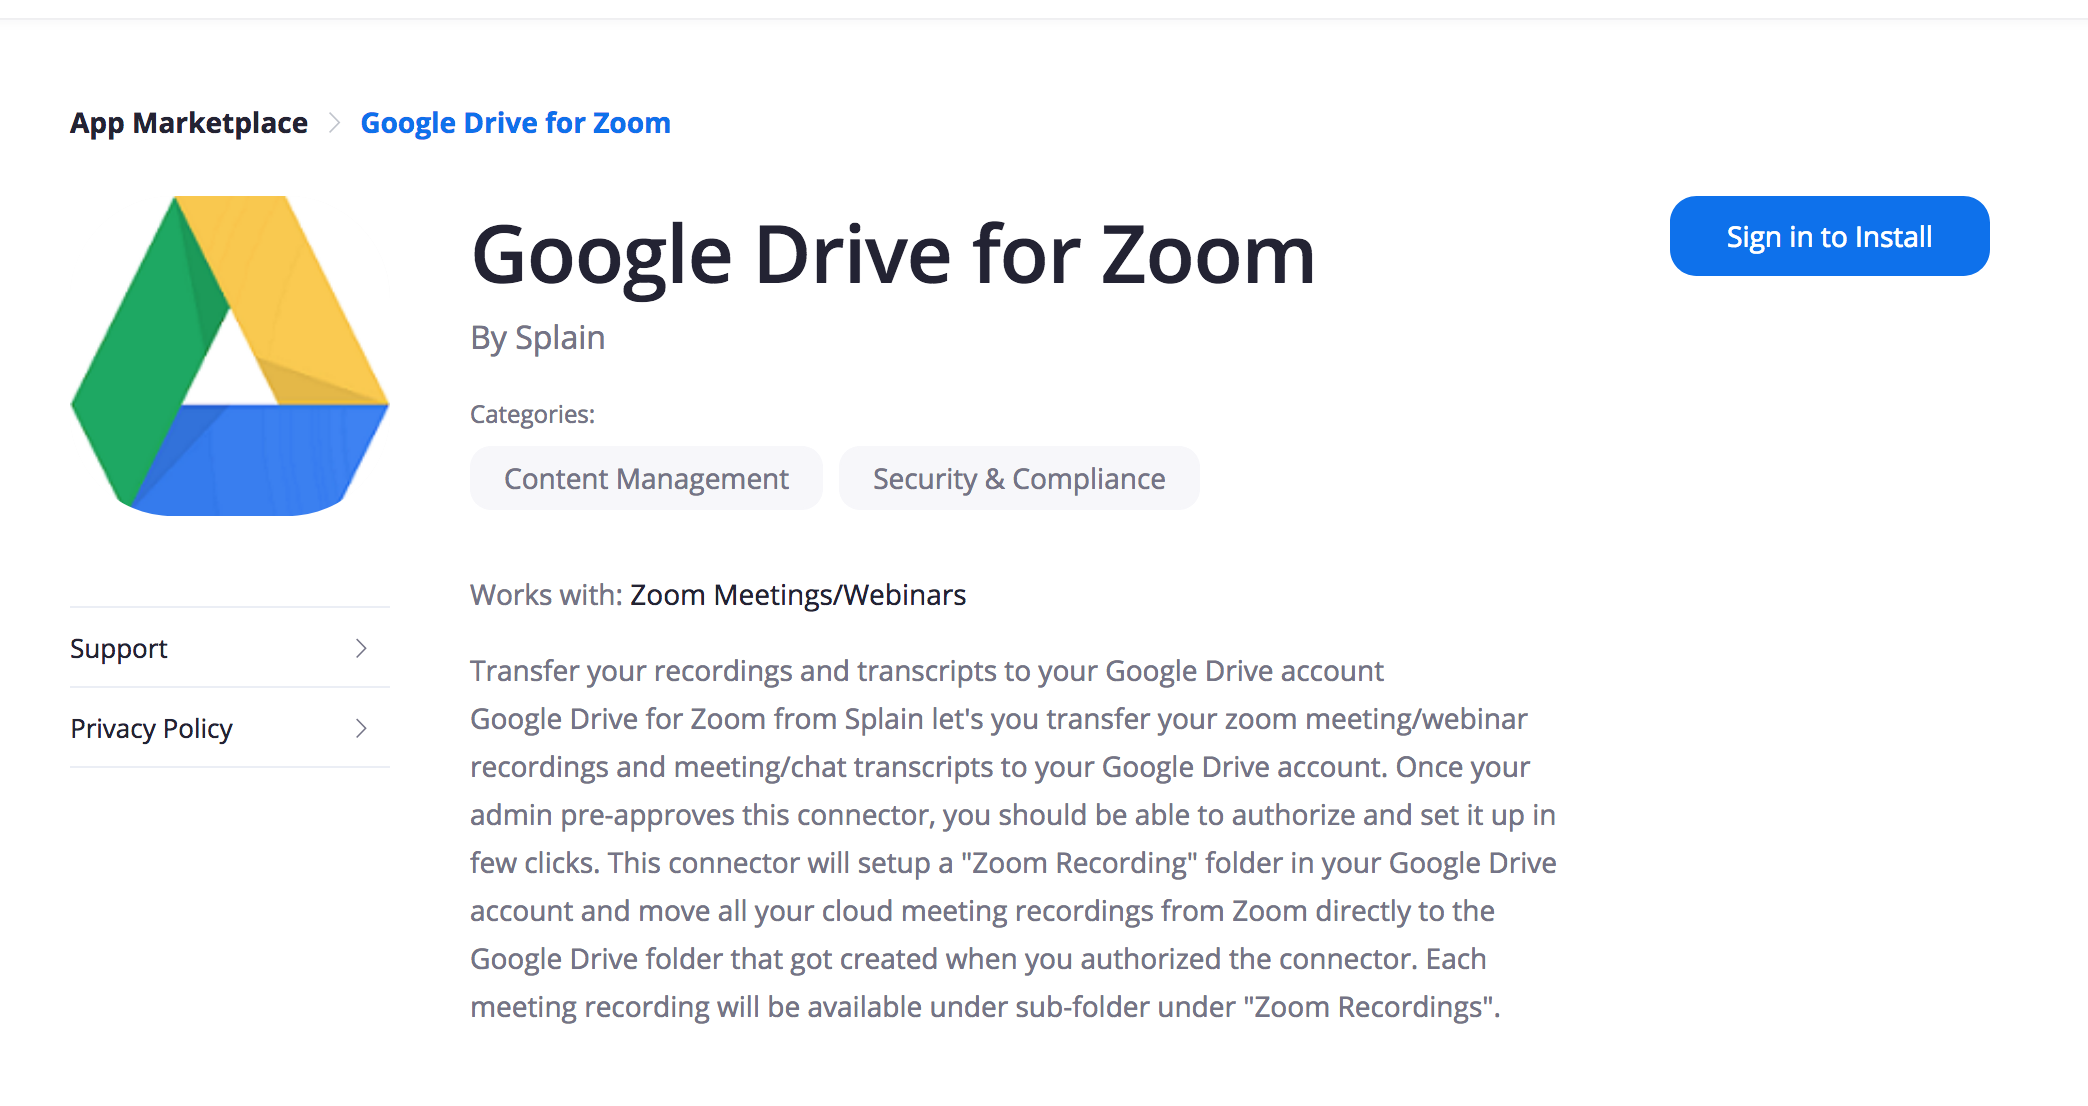 Find the google drive for zoom and sign in with our zoom credentials